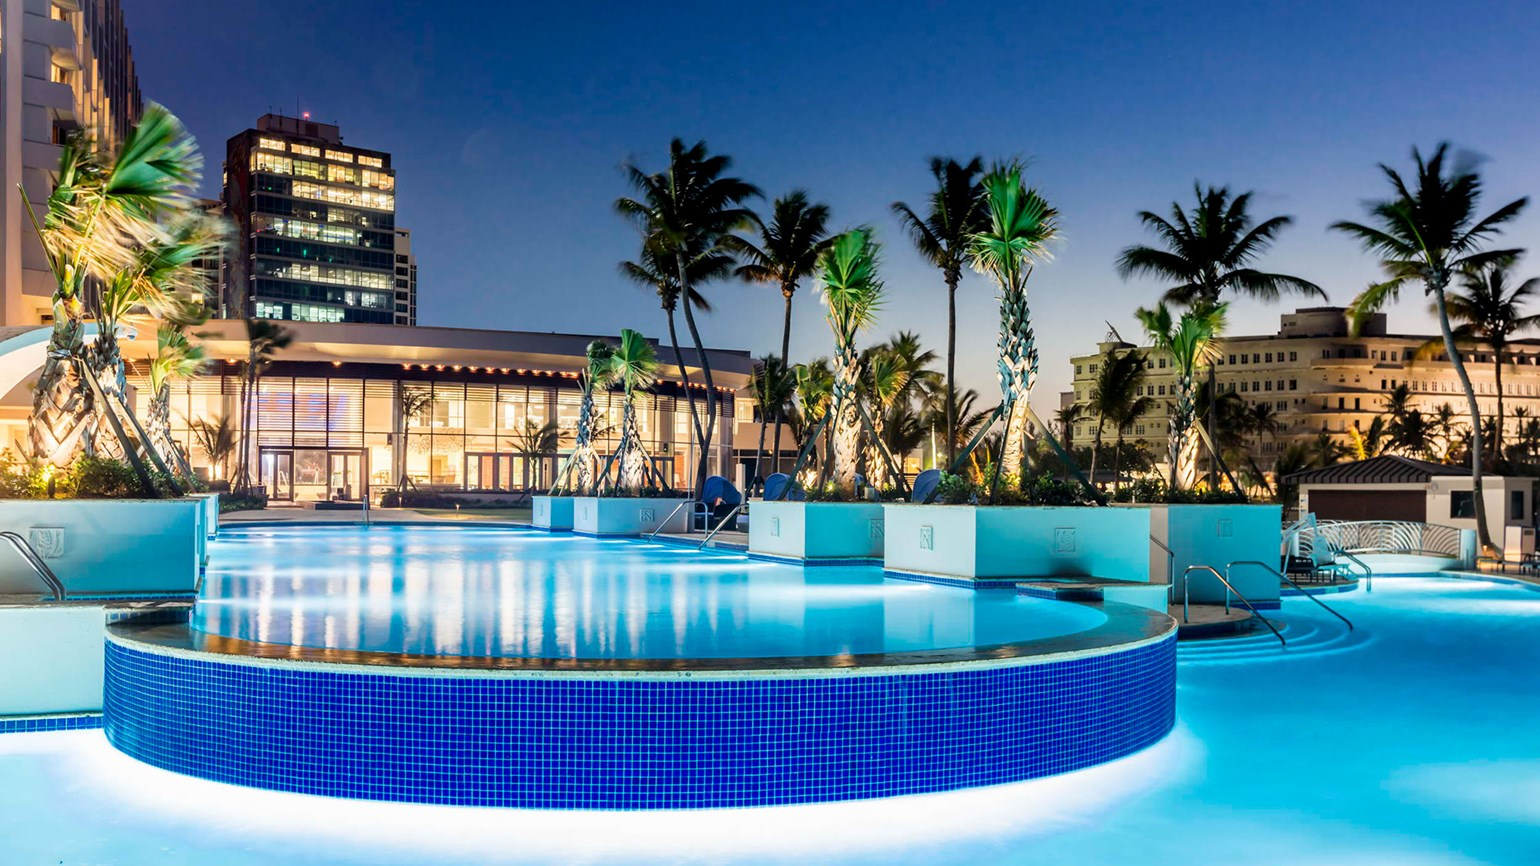 Caribe Hilton in San Juan reopens to guests